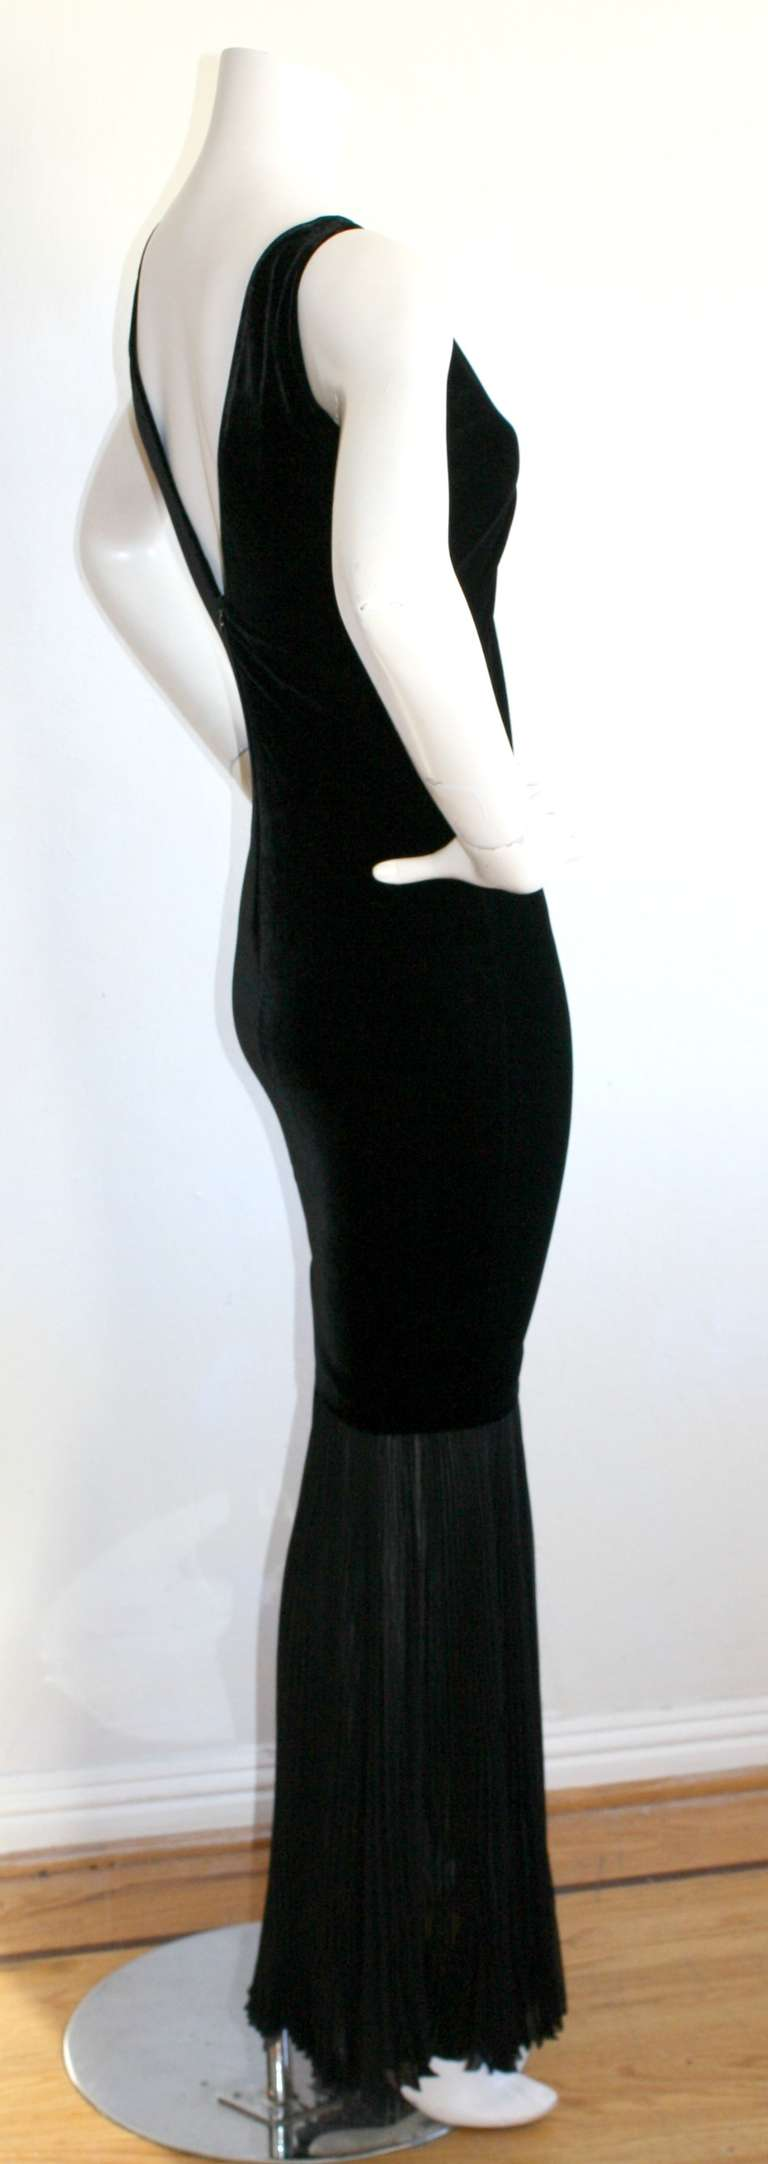 Jean Paul Gaultier Vintage Black Velvet Sexy Mermaid Fishtail Gown For Sale 2